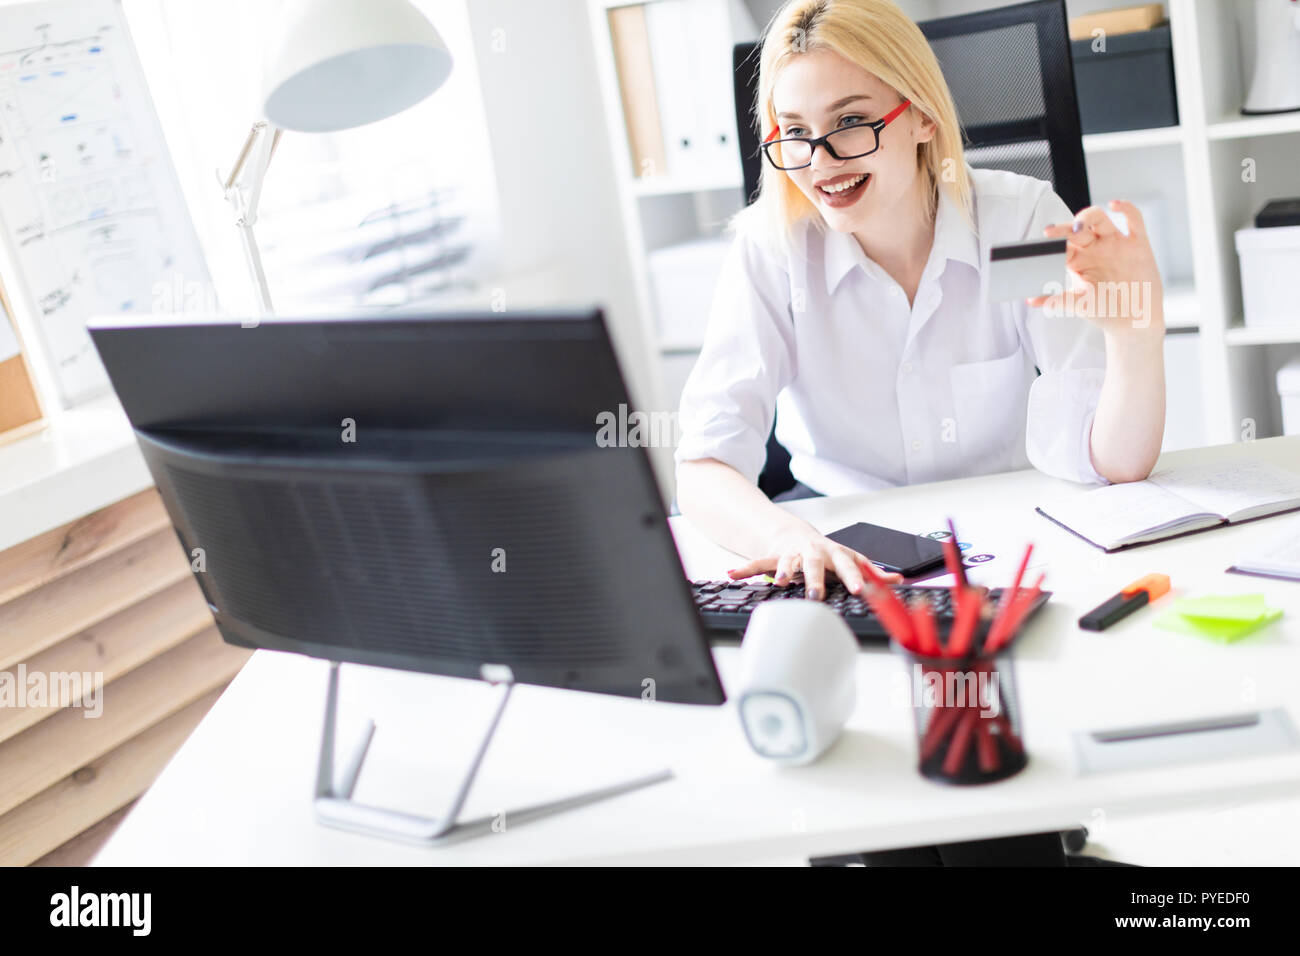 A young girl sitting in the office and holding a Bank card. - Stock Image